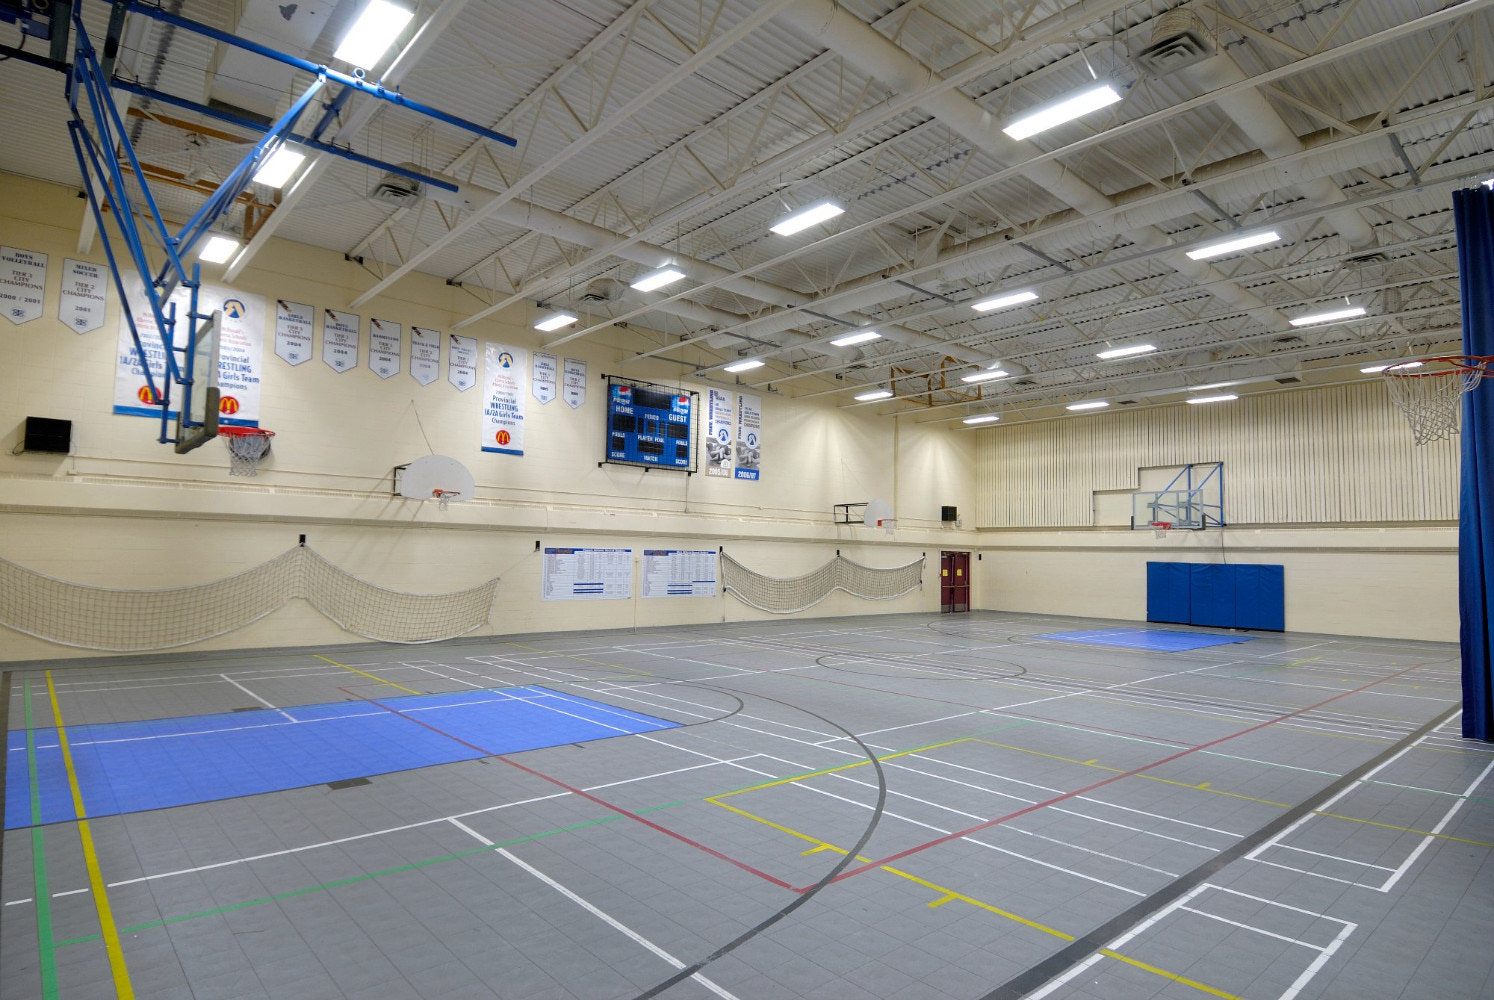 LED lighting solutions for a gymnasium